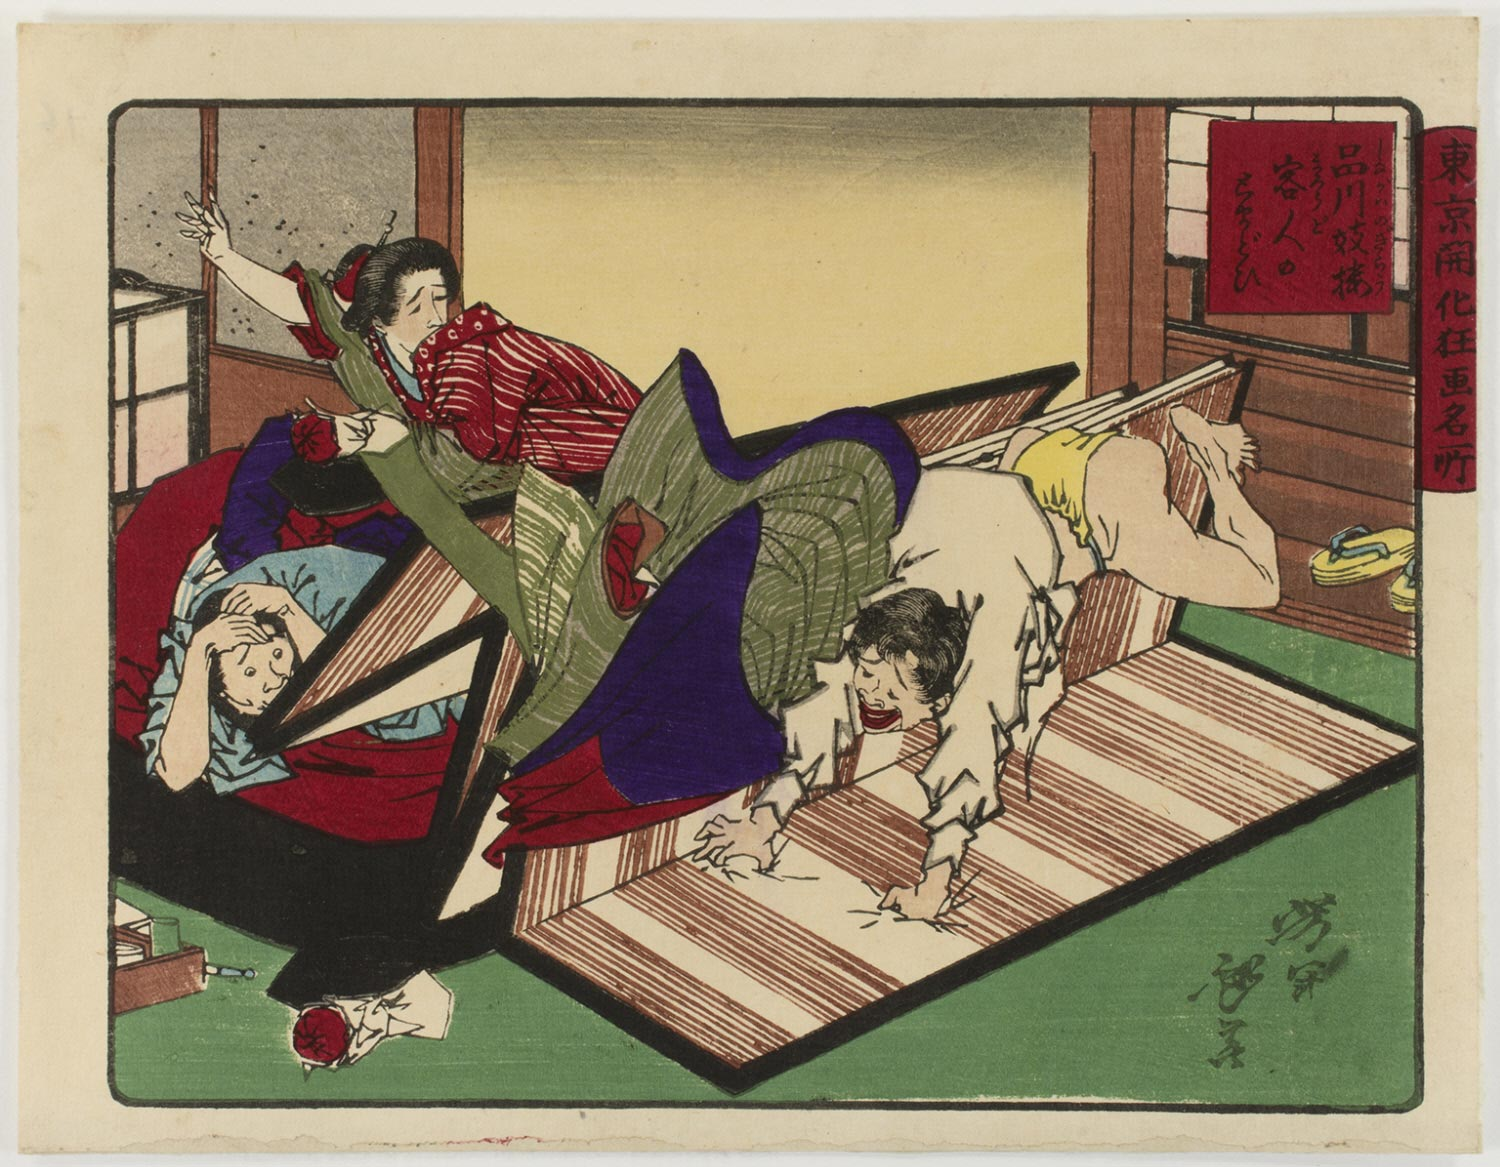 A Client Gets the Wrong Room in a Brothel in Shinagawa, from the series Comic Pictures of Famous Places Amid the Civilization of Tōkyō (Tōkyō kaika kyōga meisho)